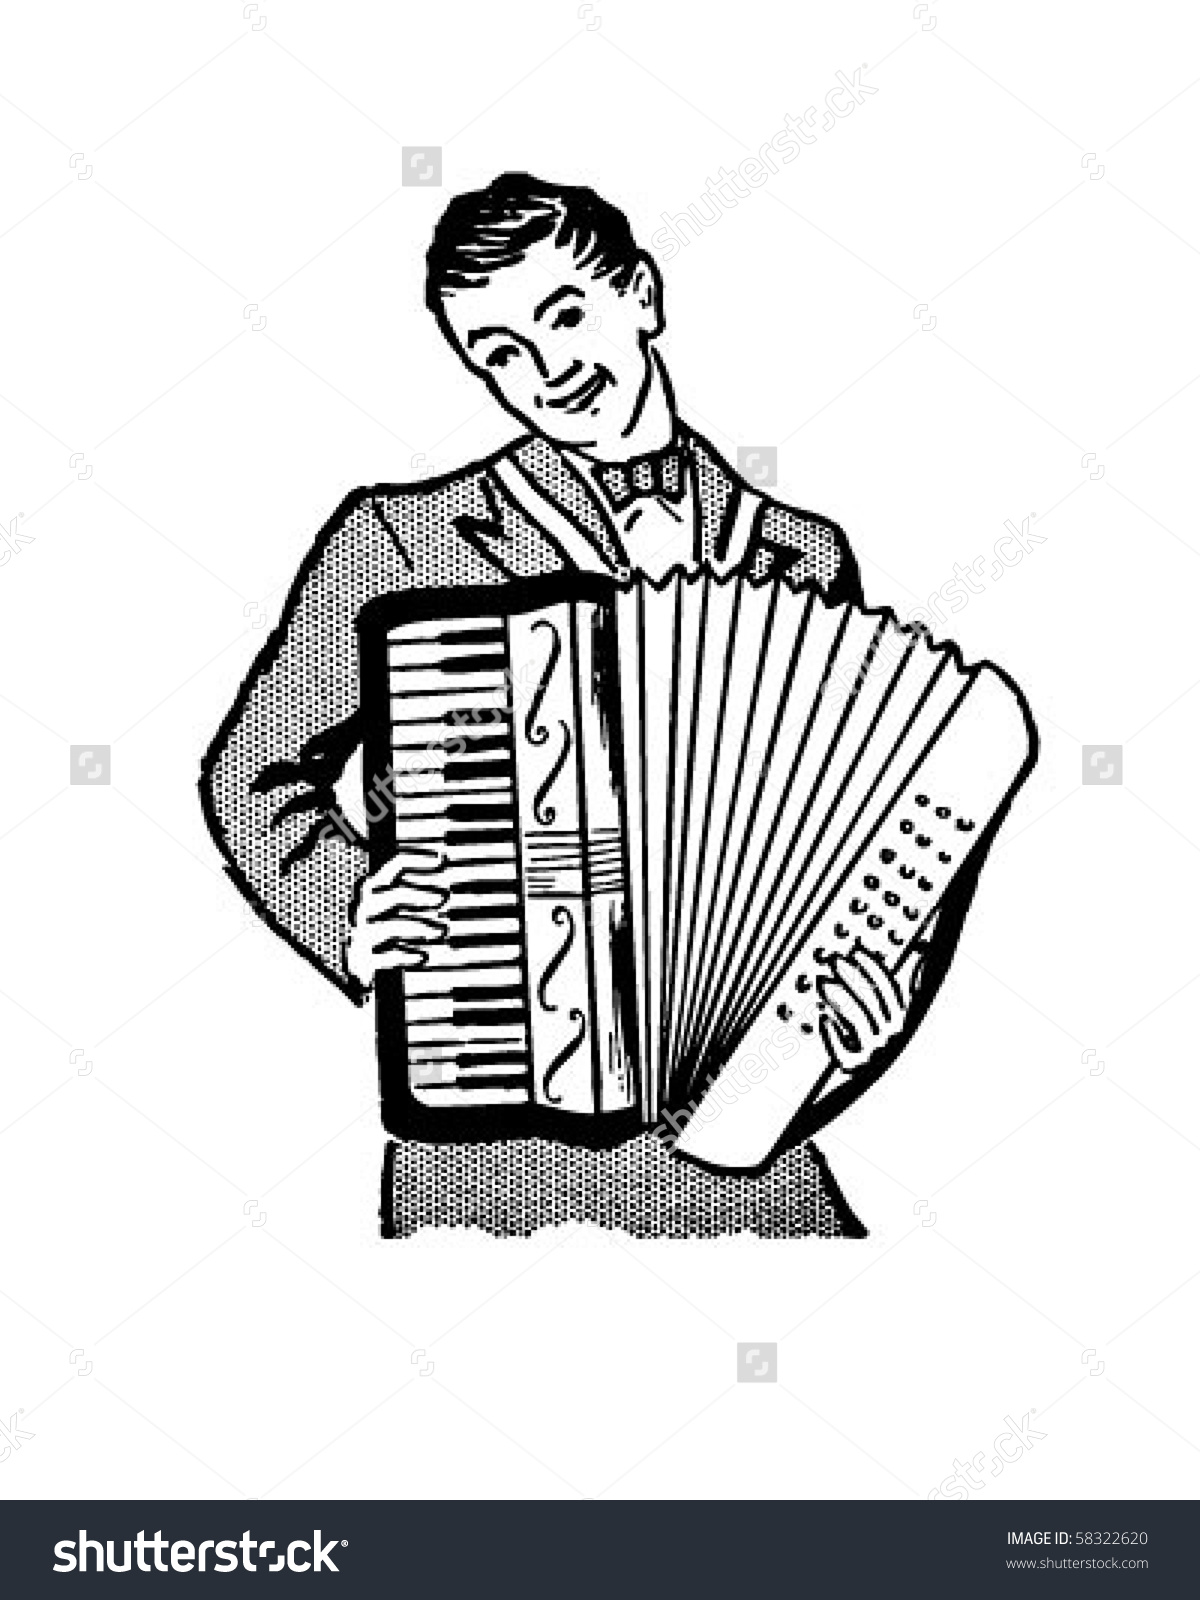 Accordion Player Retro Clip Art Stock Vector 58322620.